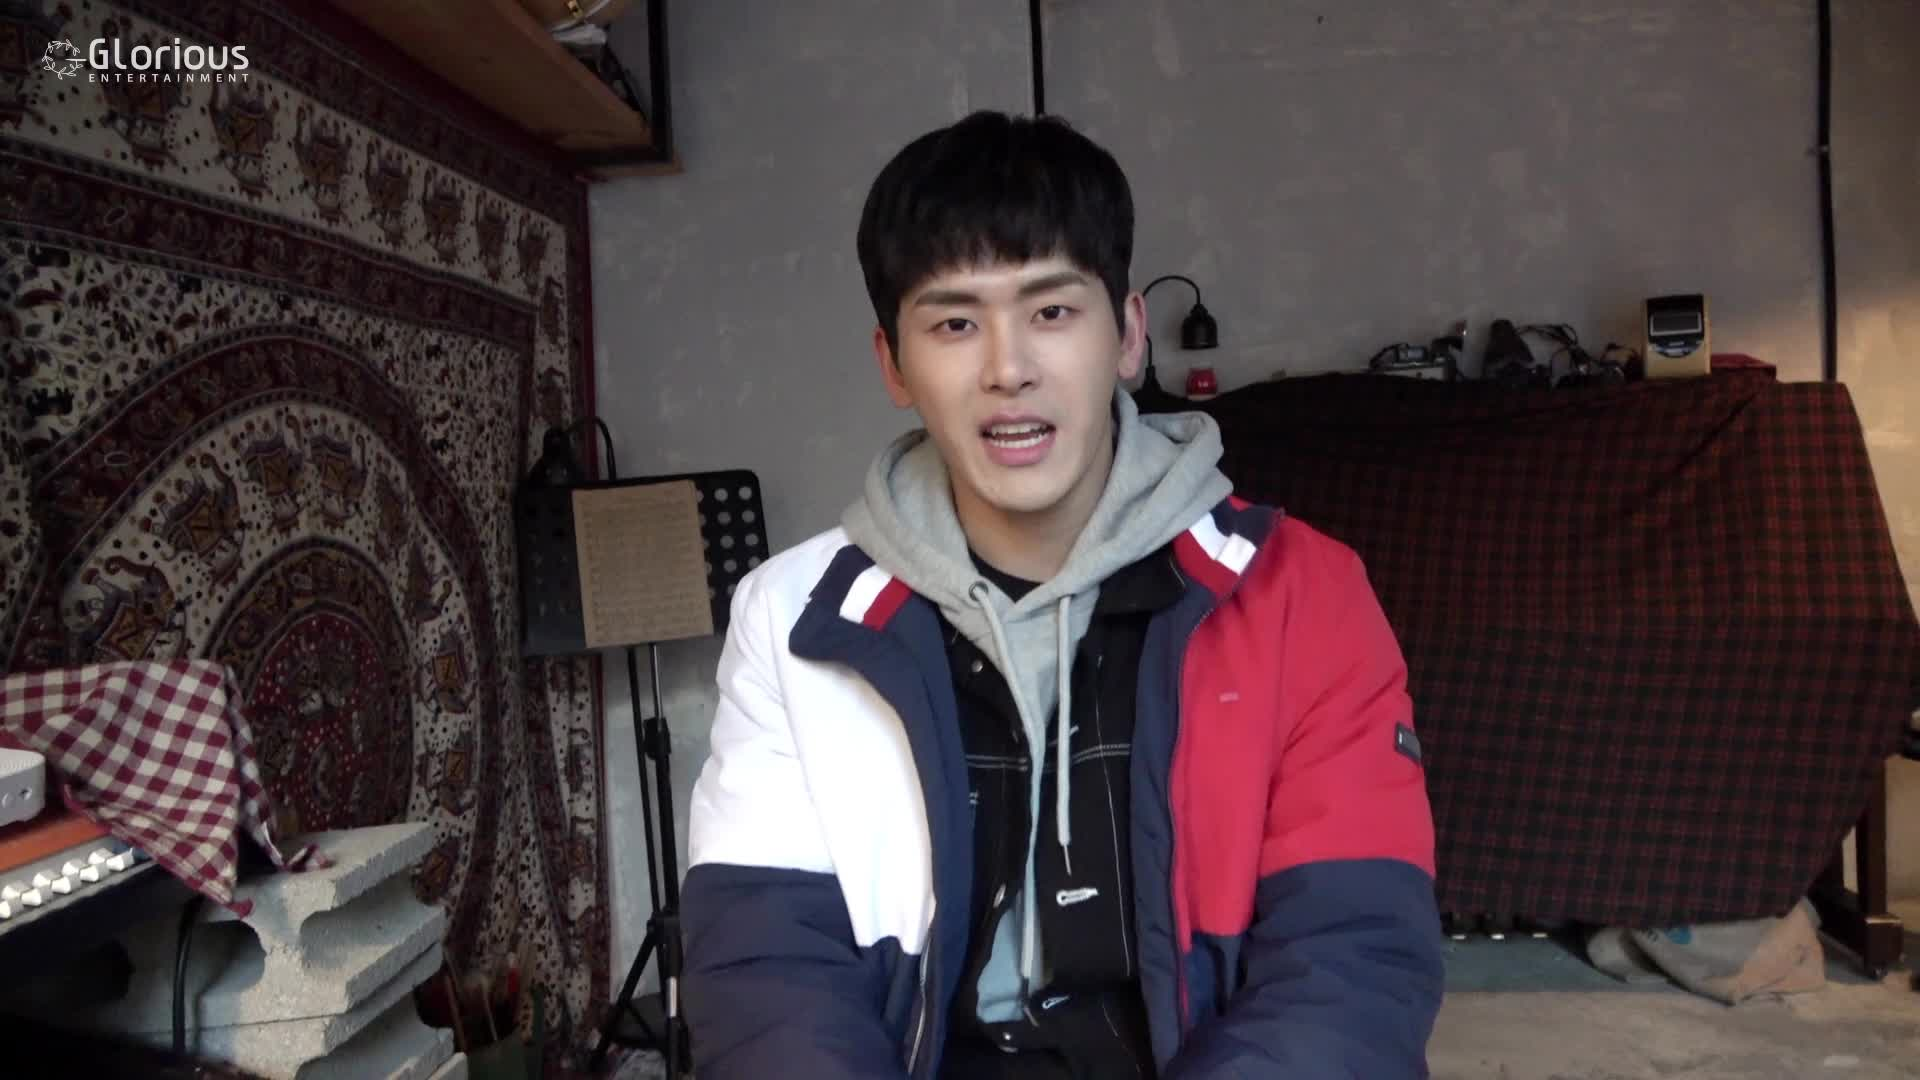 [이호원(HOYA)] 2019 HAPPY NEW YEAR MESSAGE FROM HOYA